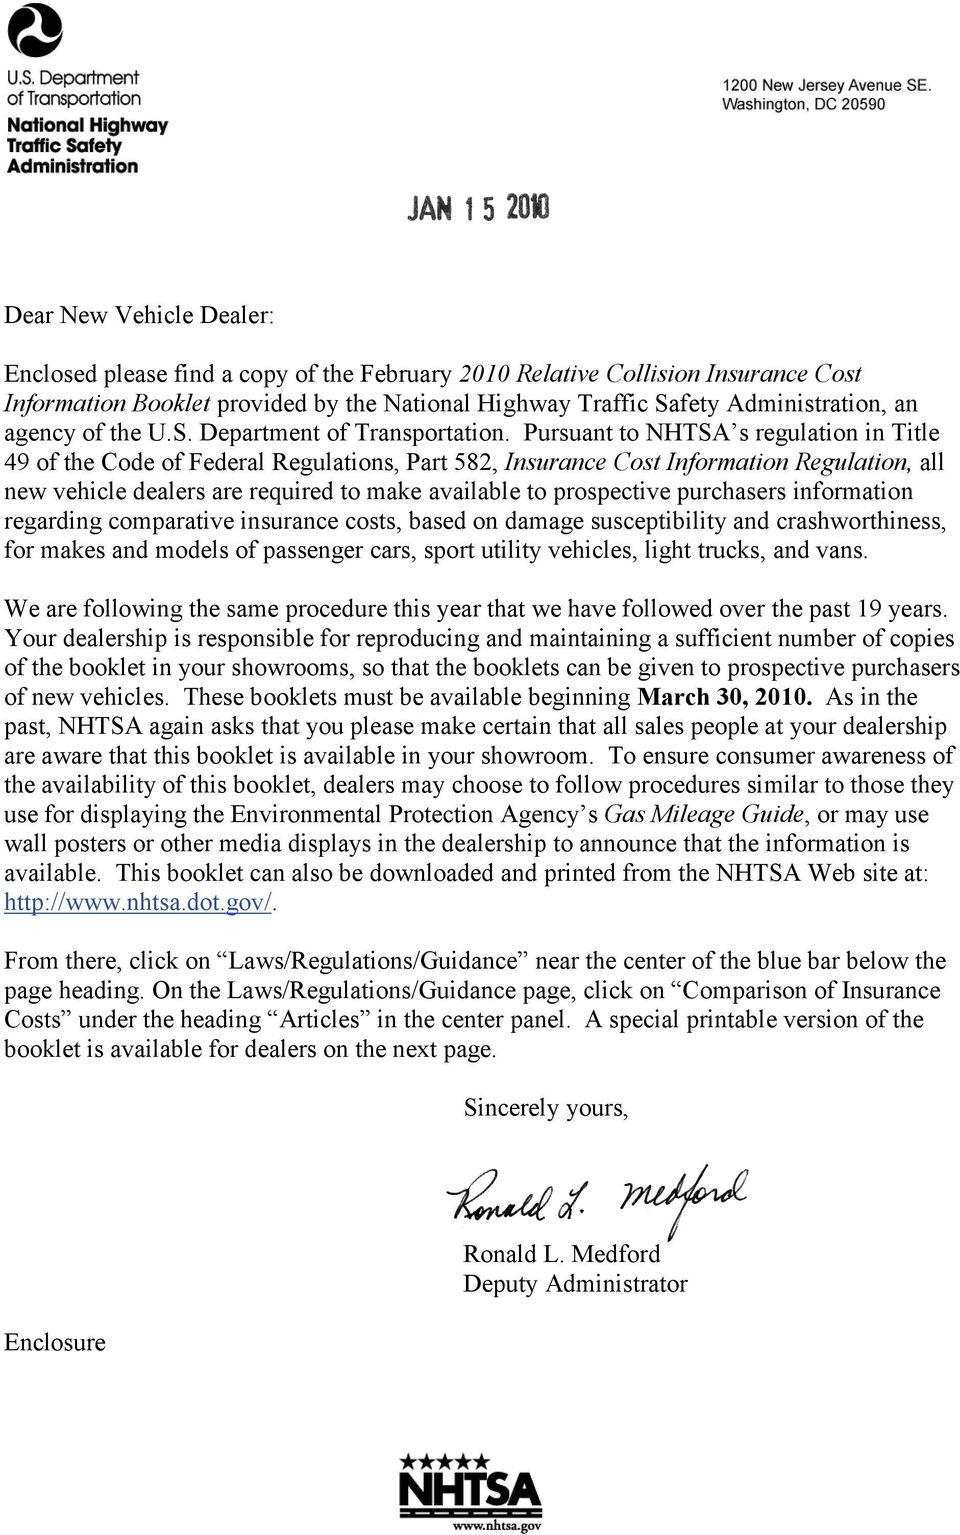 Pursuant to NHTSA s regulation in Title 49 of the Code of Federal Regulations, Part 582, Insurance Cost Information Regulation, all new vehicle dealers are required to make available to prospective